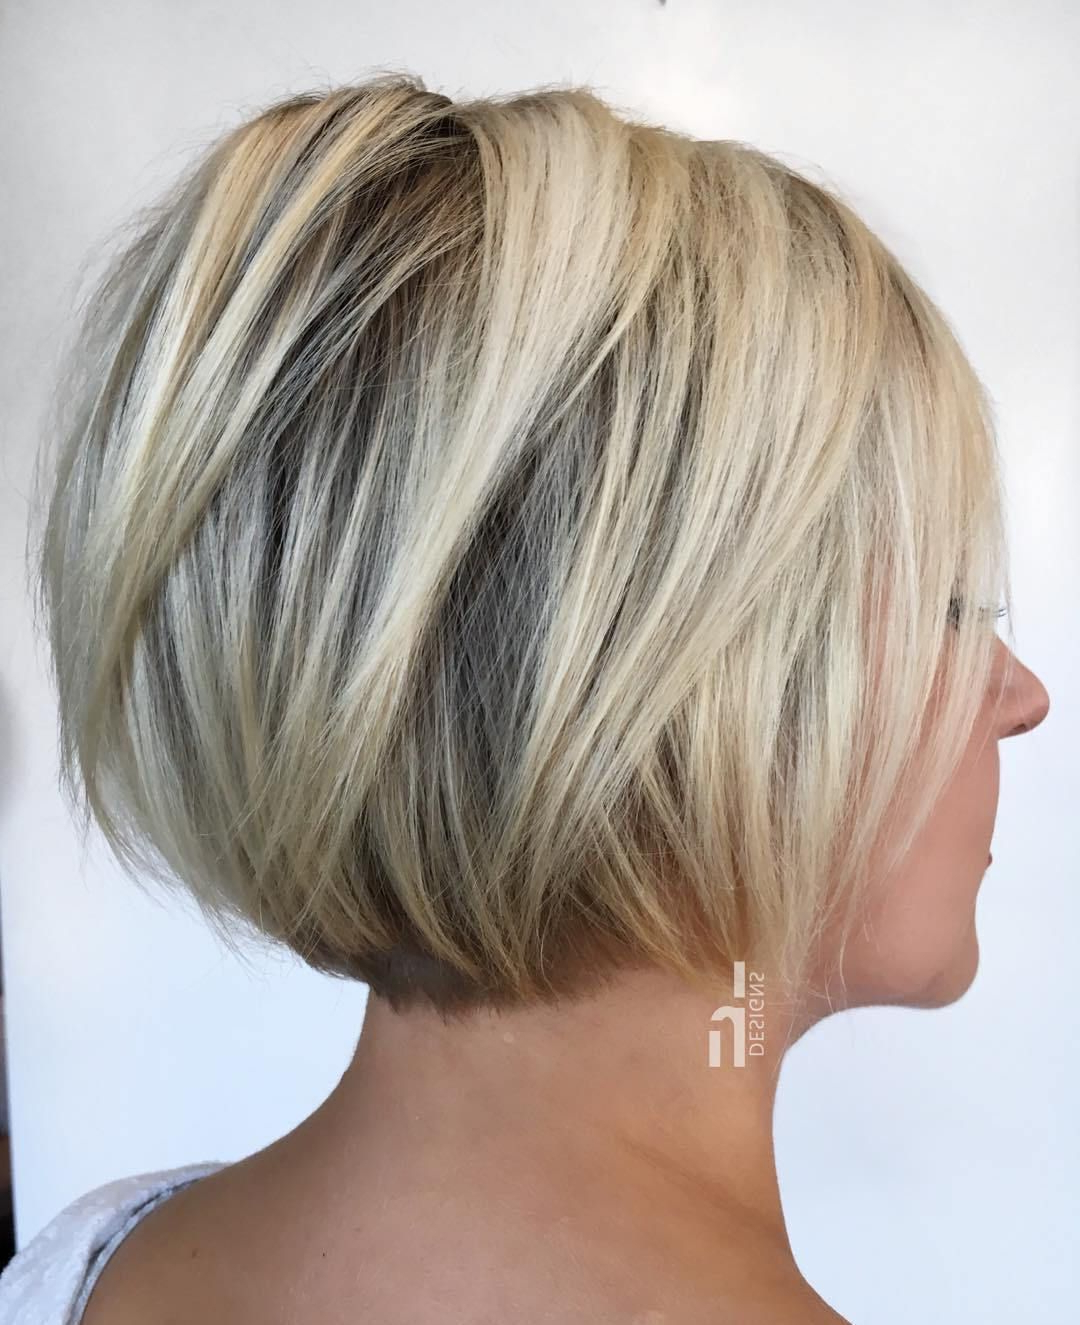 90 Classy And Simple Short Hairstyles For Women Over 50 | My Bob Fav With Regard To Messy Pixie Haircuts With V Cut Layers (Gallery 5 of 20)